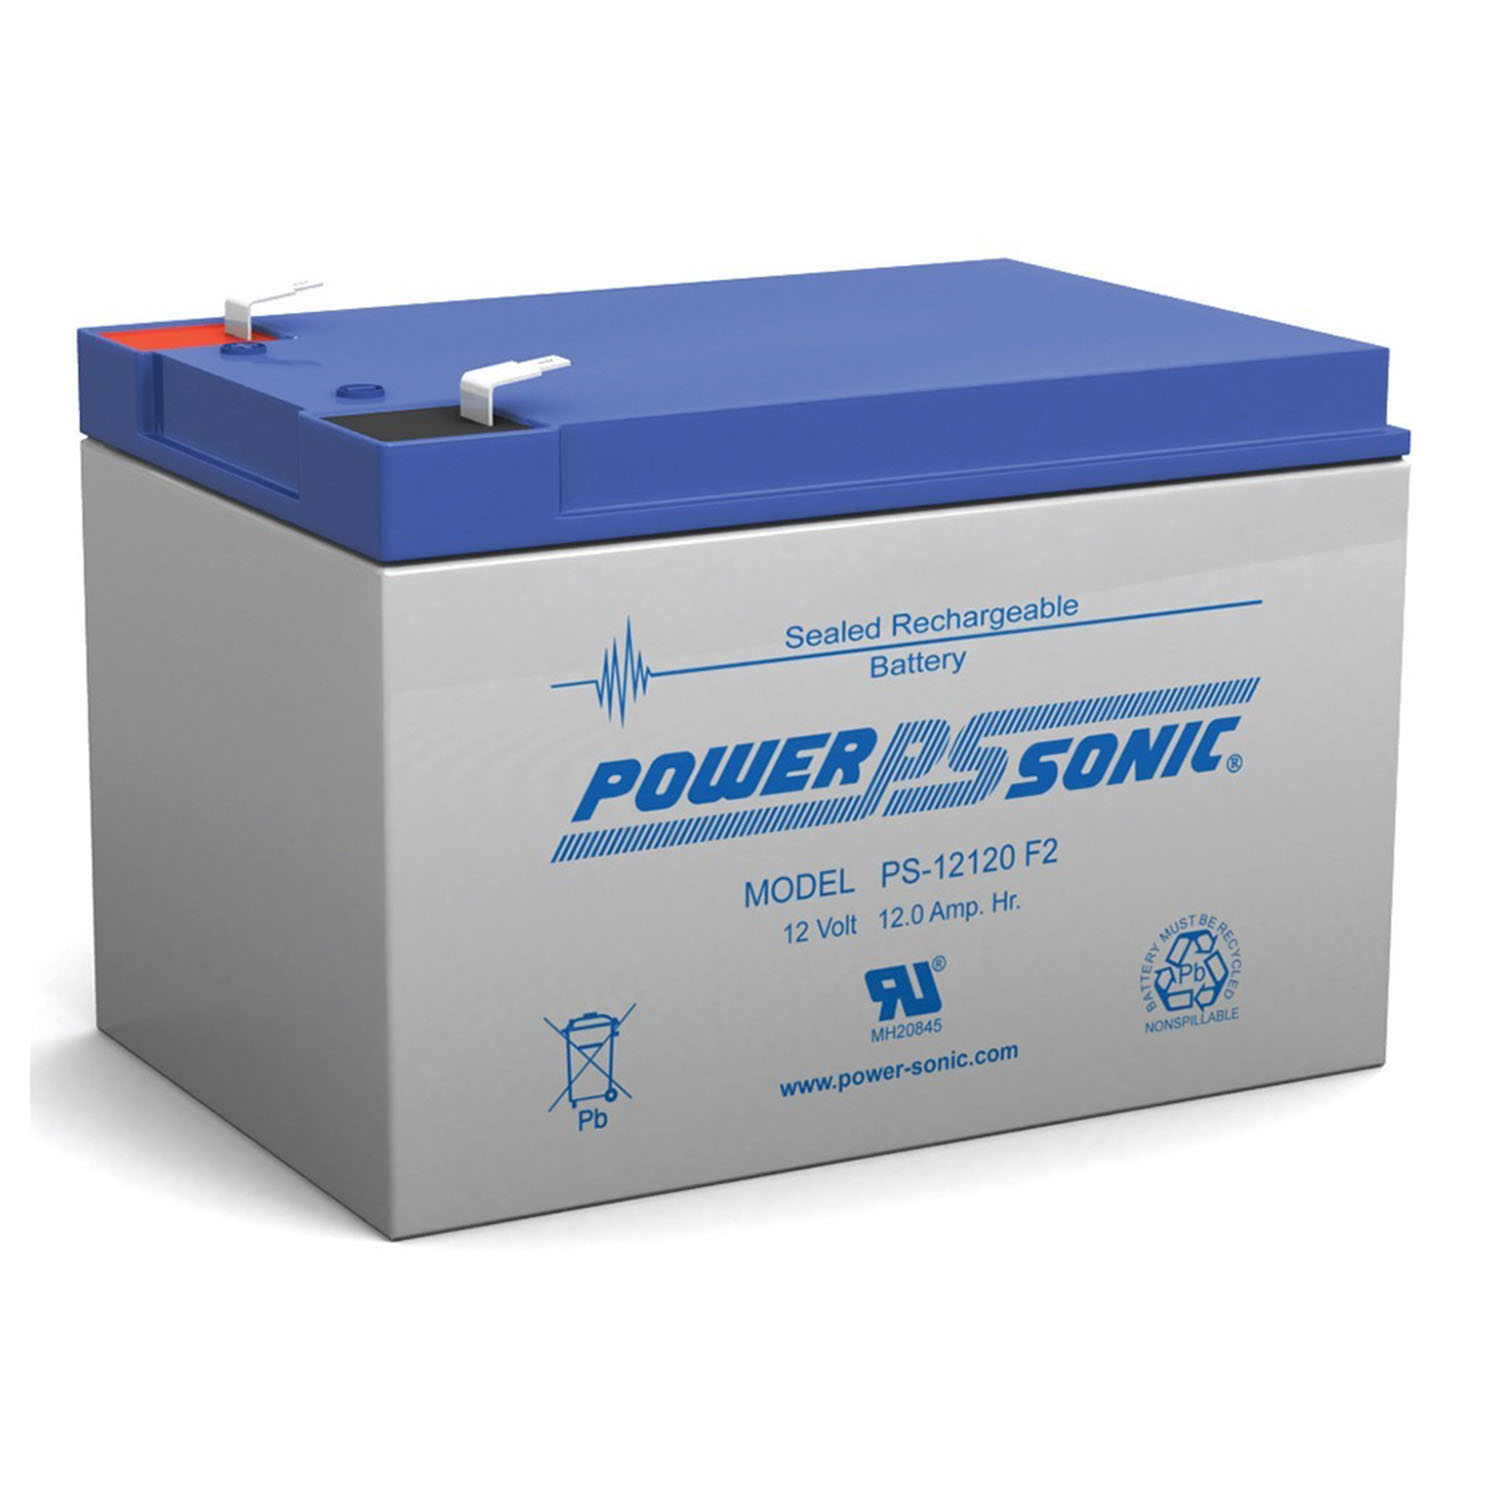 Apc Bp650s Ups Replacement Battery (Replacement) 12V 12Ah F2